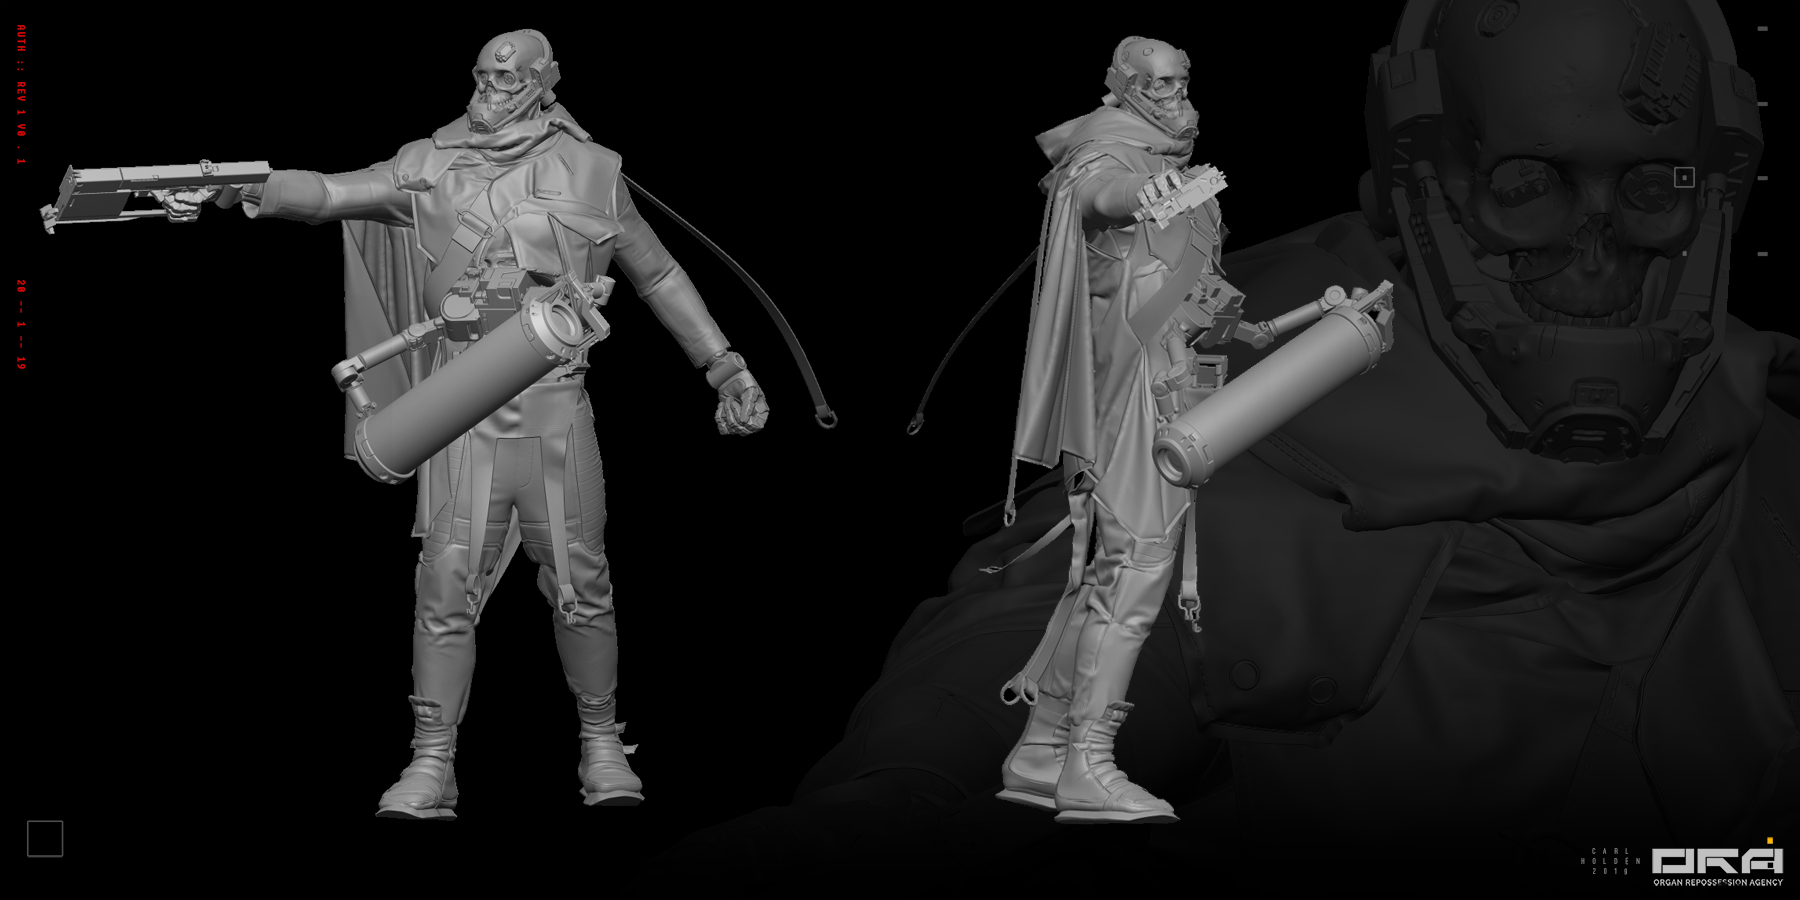 Student Work for Advanced ZBrush in Concepting in ZBrush